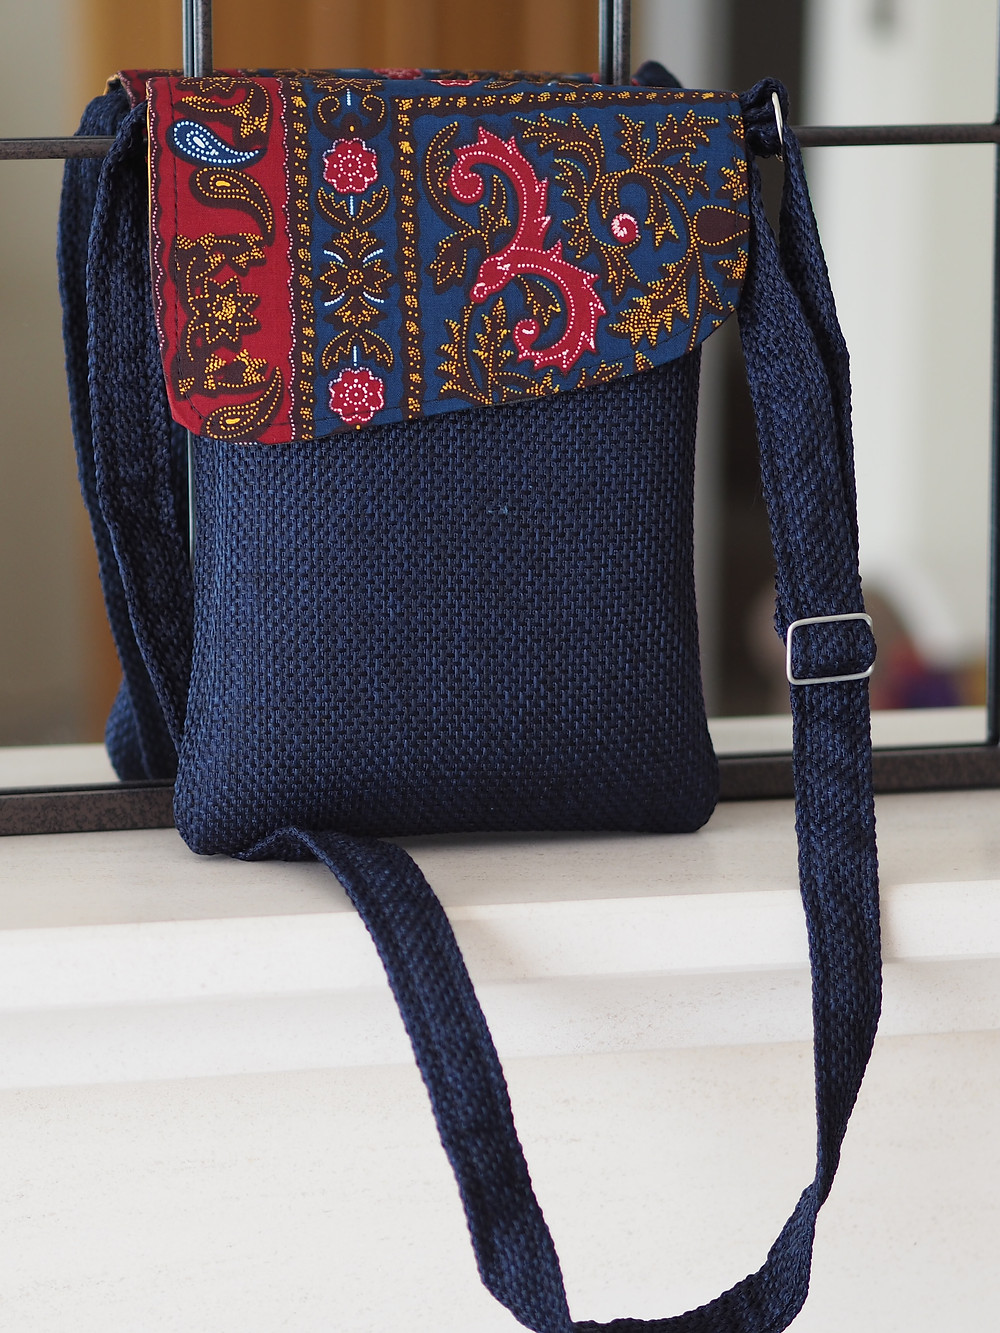 Navy kikoy and sisal handmade crossbody bag available to buy at Wild Home Online on Etsy